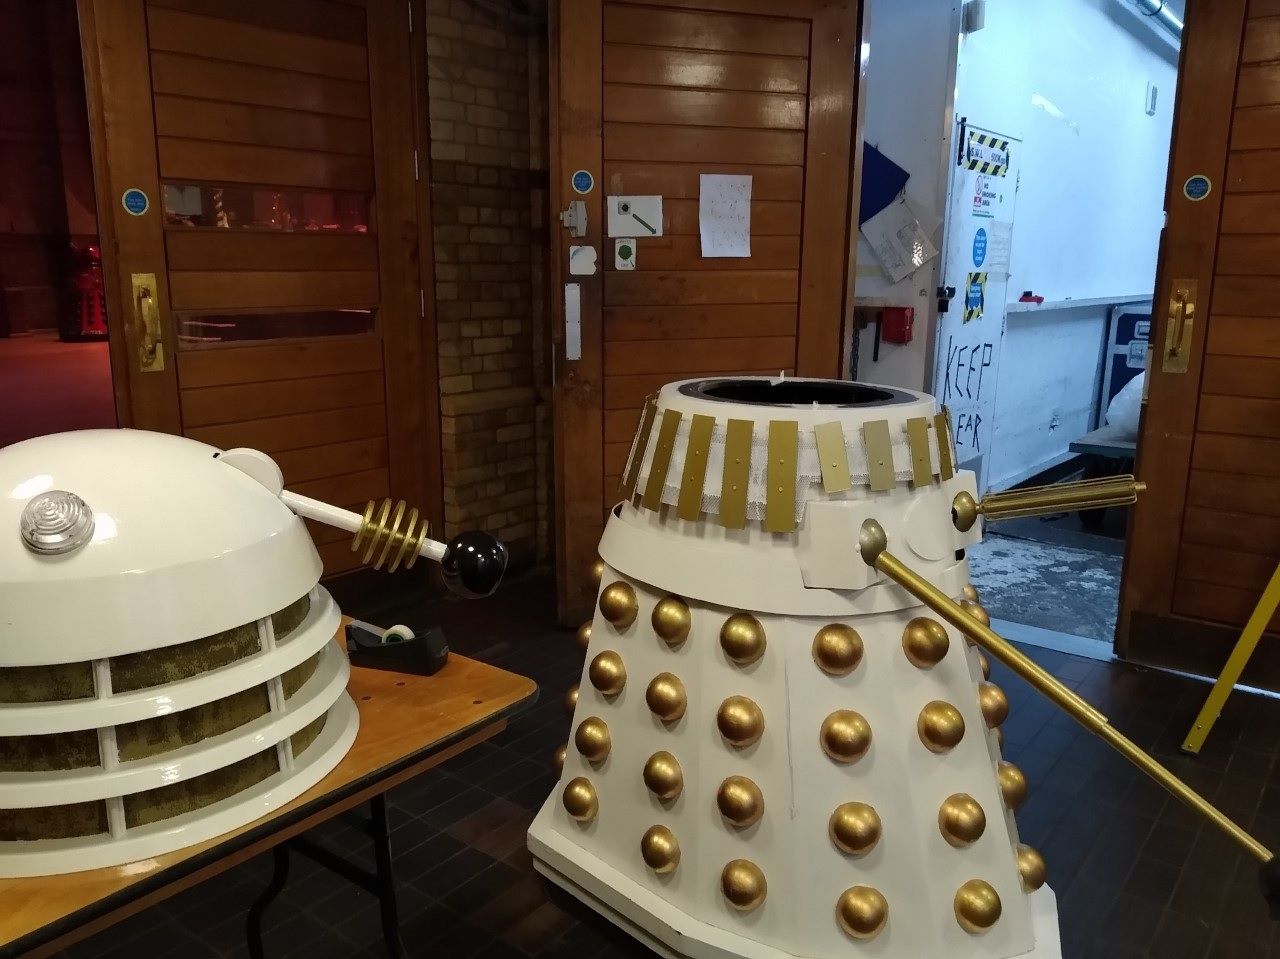 One Man, Two Daleks: What It's Like Making and Sitting Inside a Dalek for Doctor Who Events